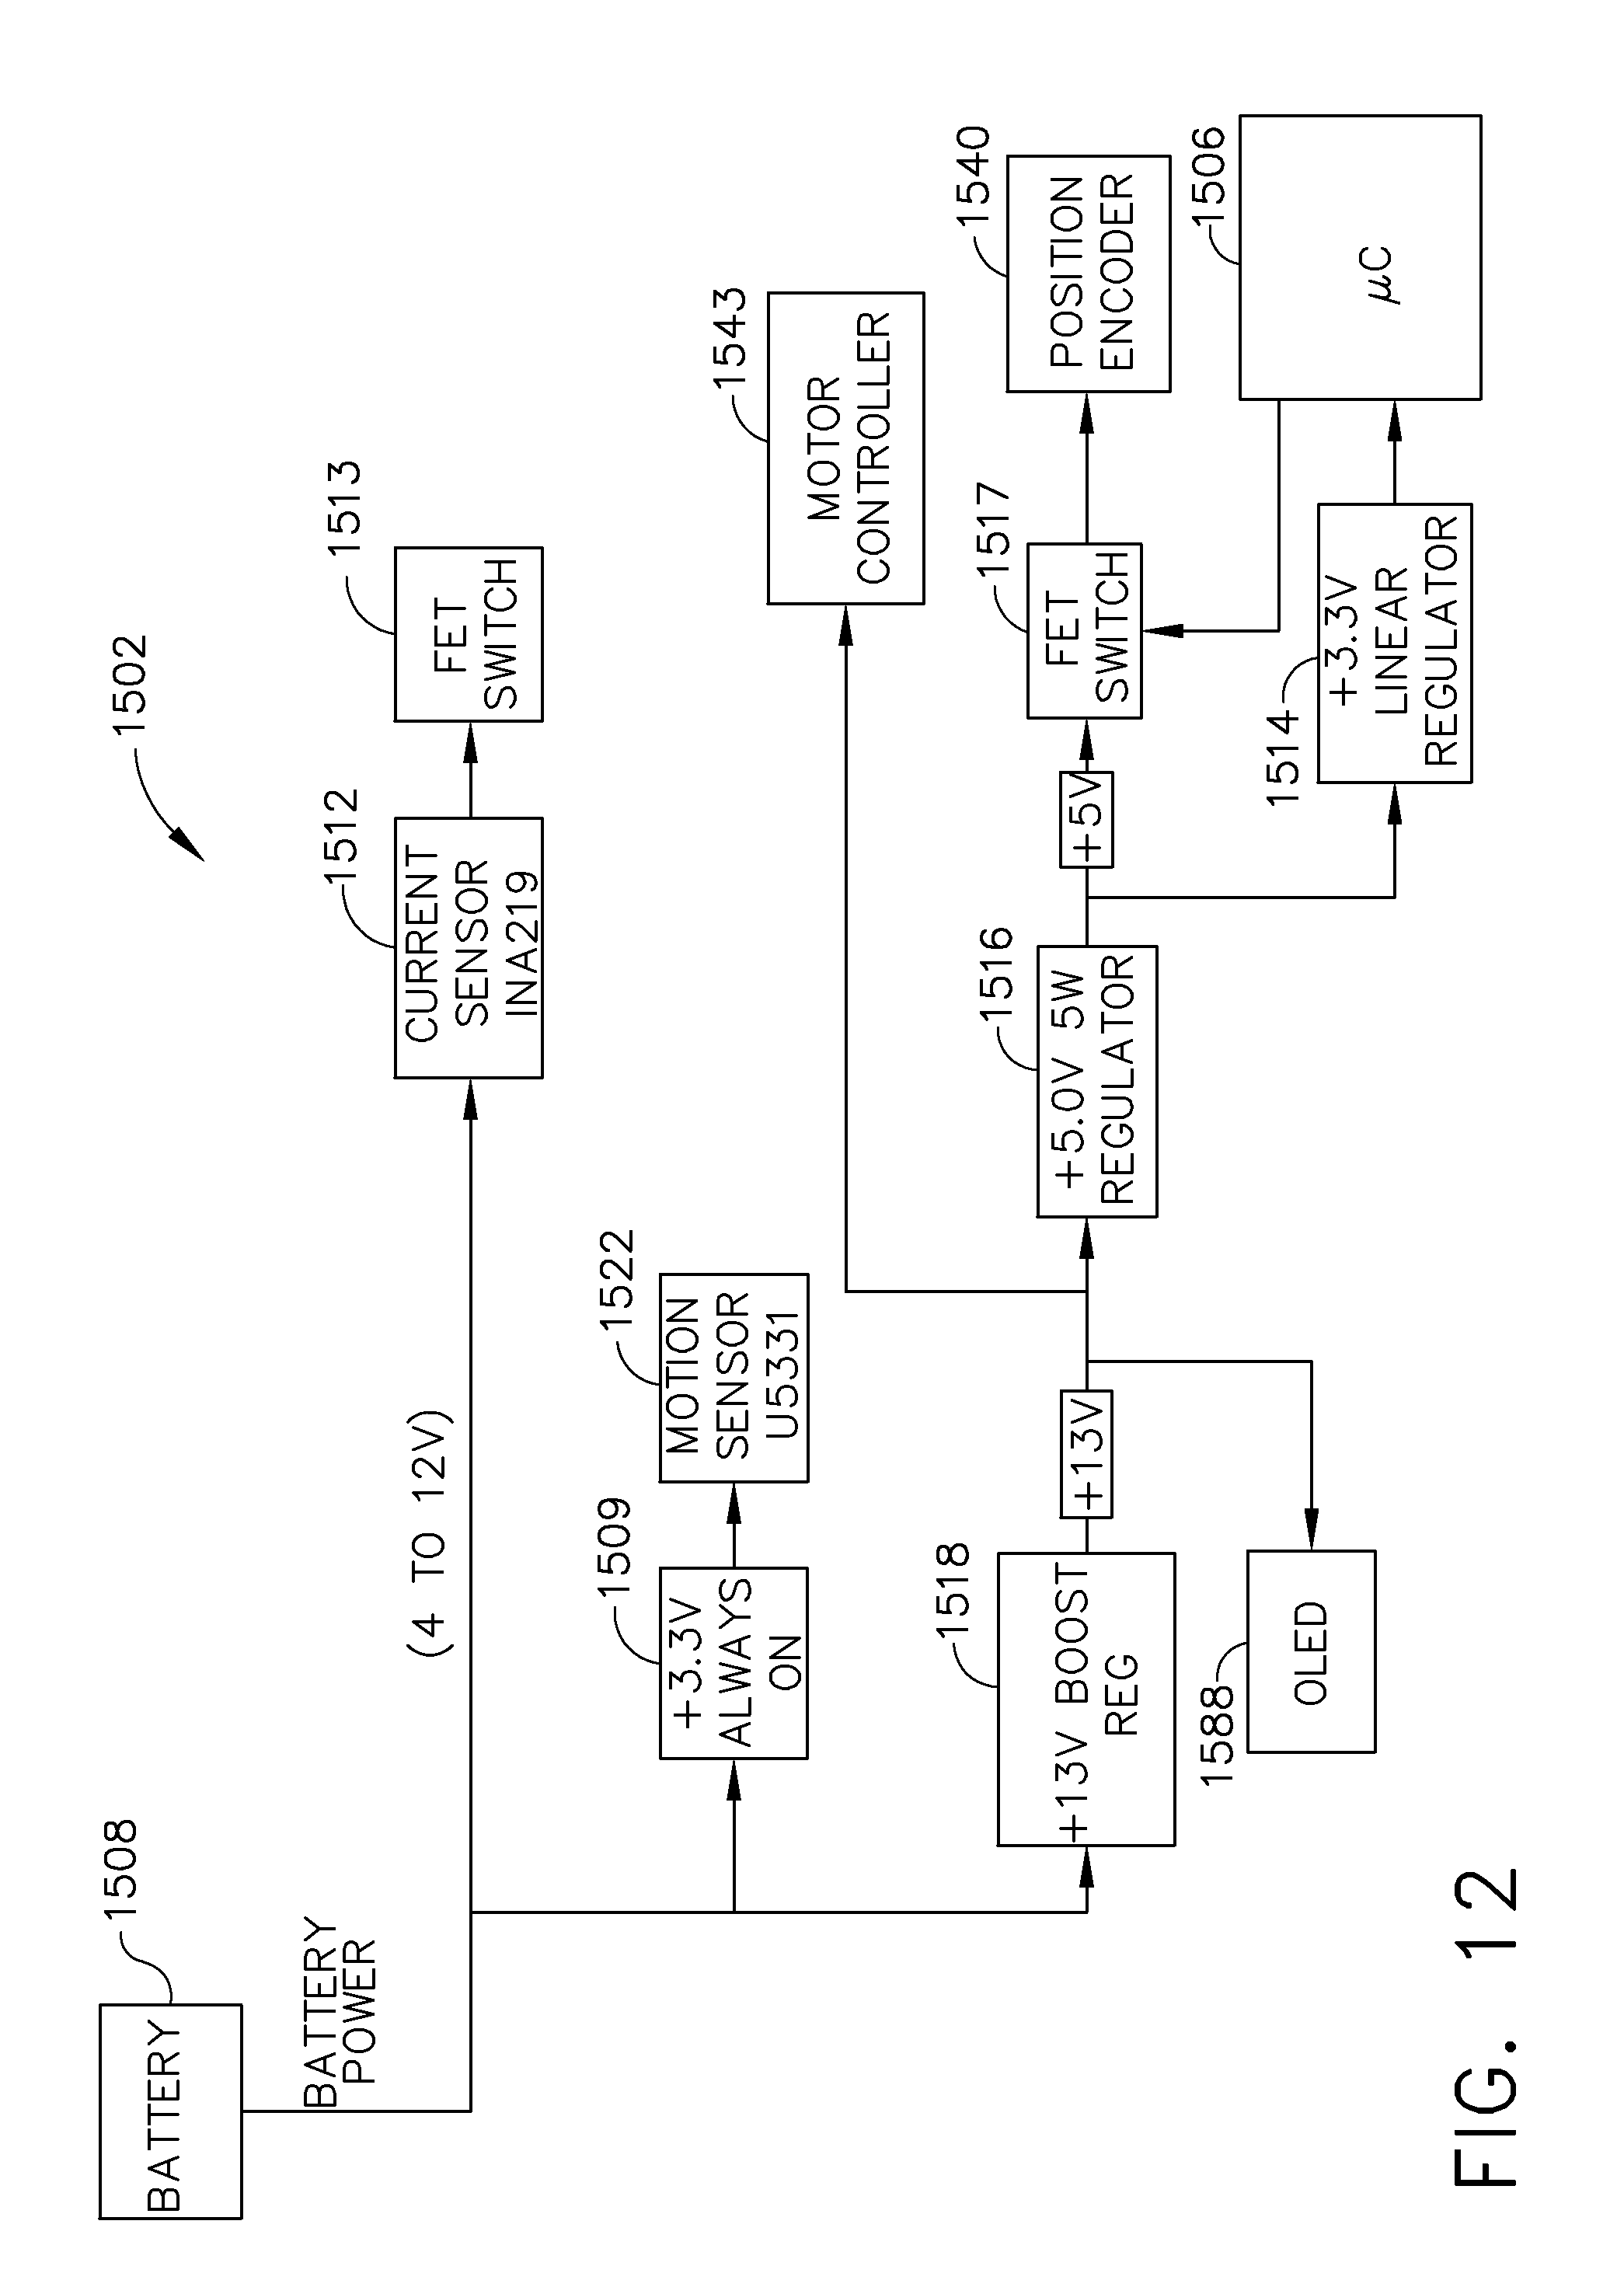 Us9733663b2 Power Management Through Segmented Circuit And Detector Vibration Impulse Counter Water Switch Sensor Variable Voltage Protection Google Patents